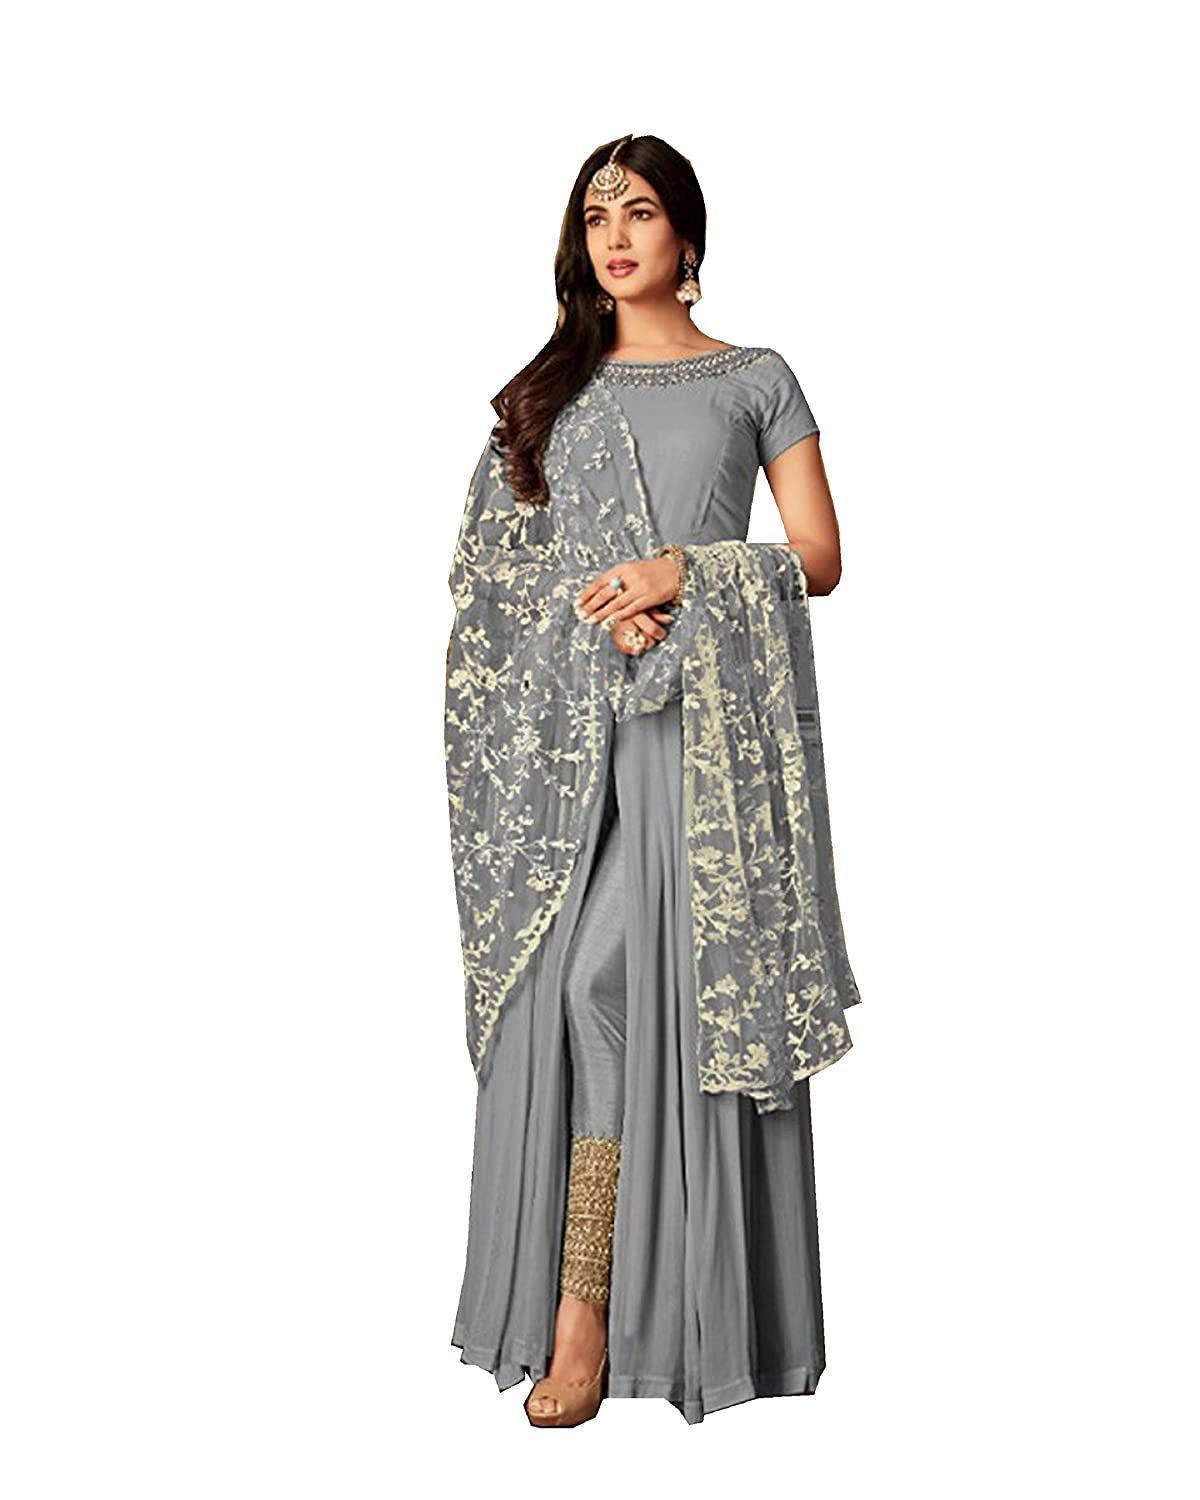 Amazon.com: Delisa Indian/Pakistani Bollywood Party Wear ...